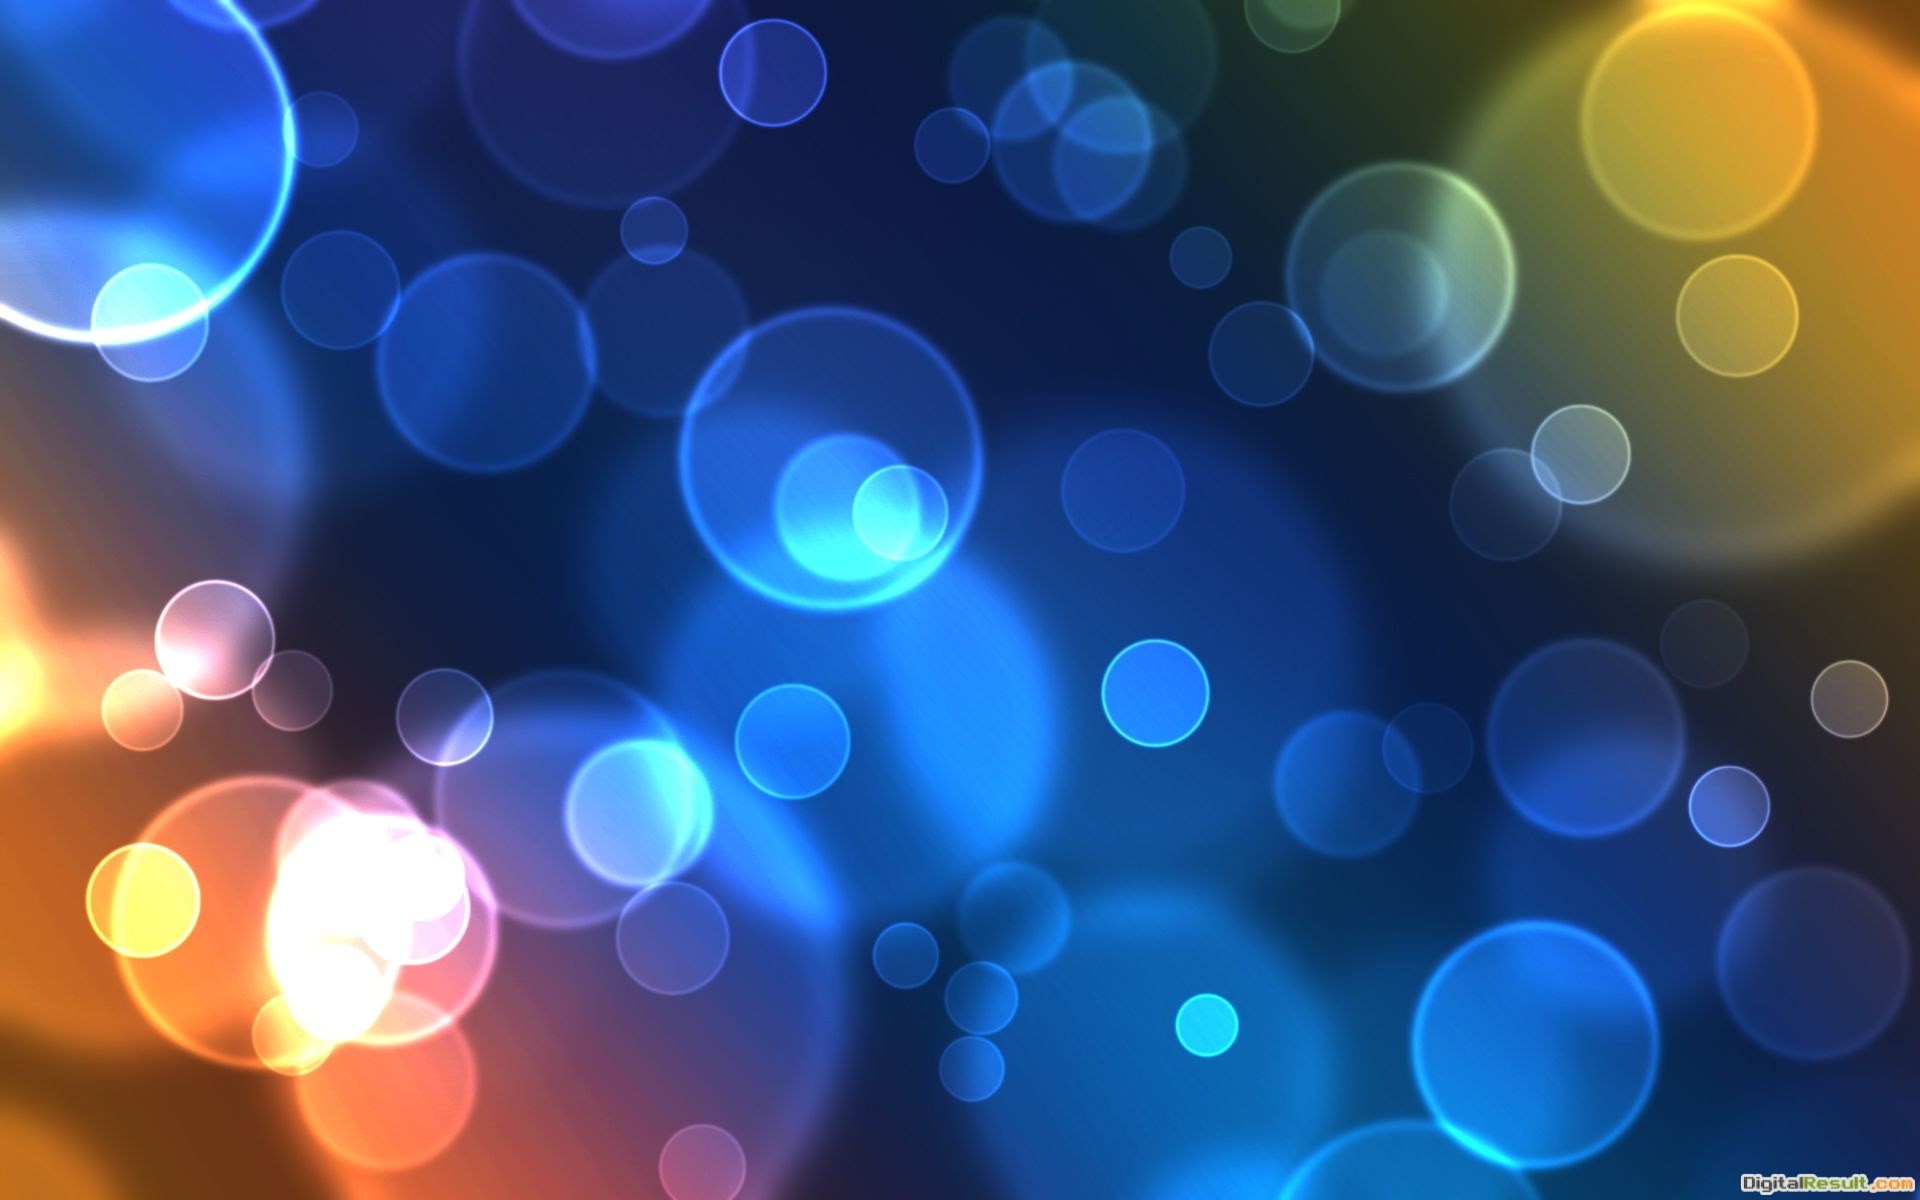 Circles, Glare, Light, Colorful, Background Wallpaper, Background 1867